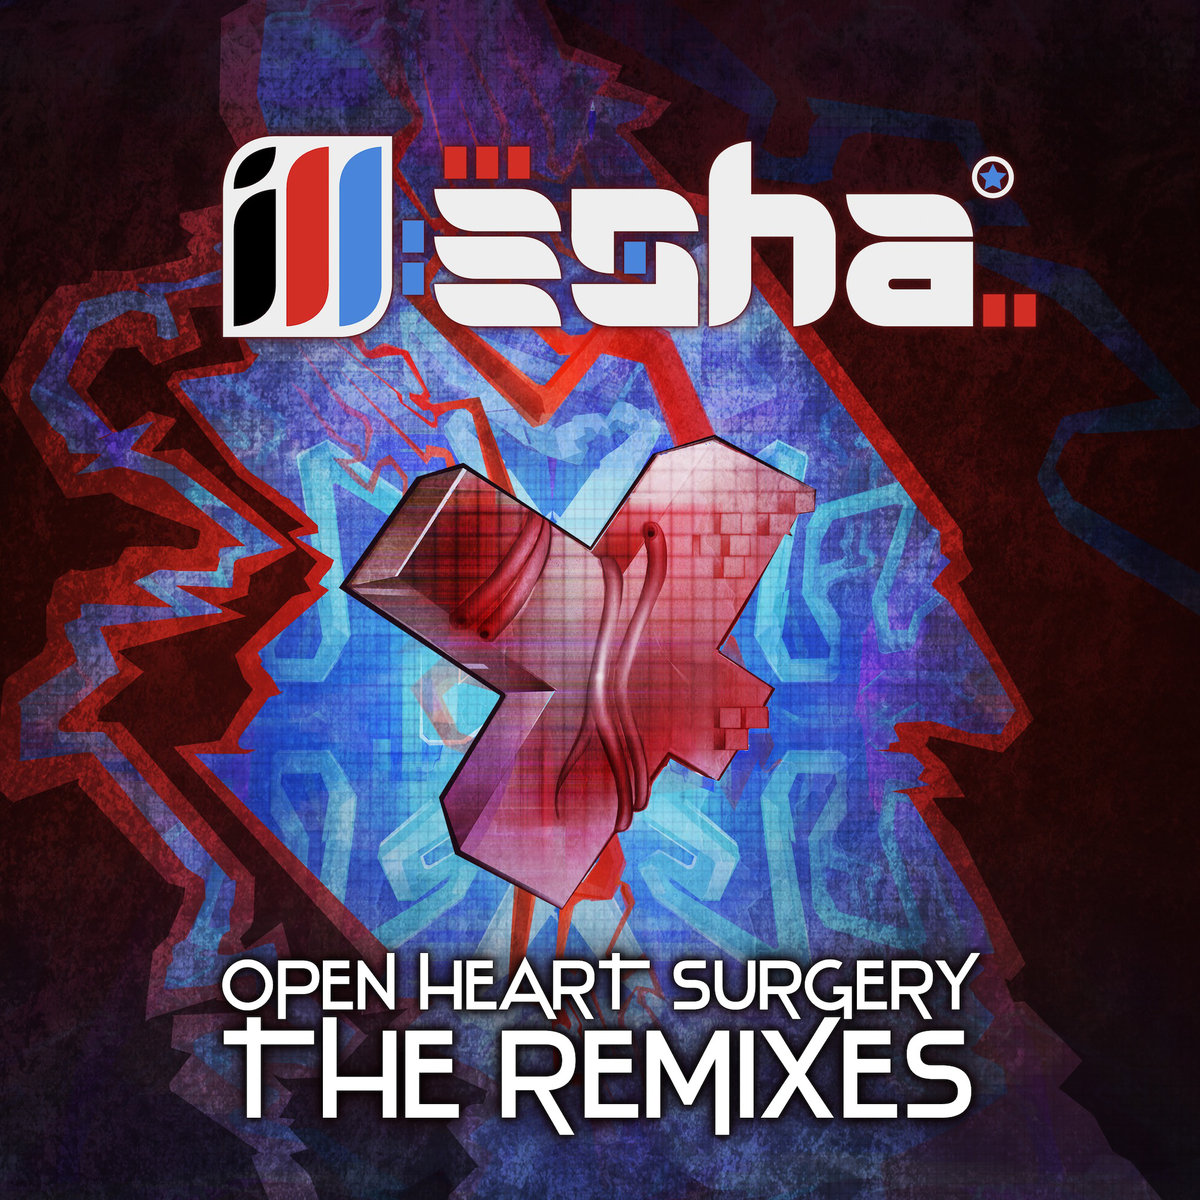 ill-esha - Dominoes (sAuce Remix) @ 'Open Heart Surgery: The Remixes' album (Austin)